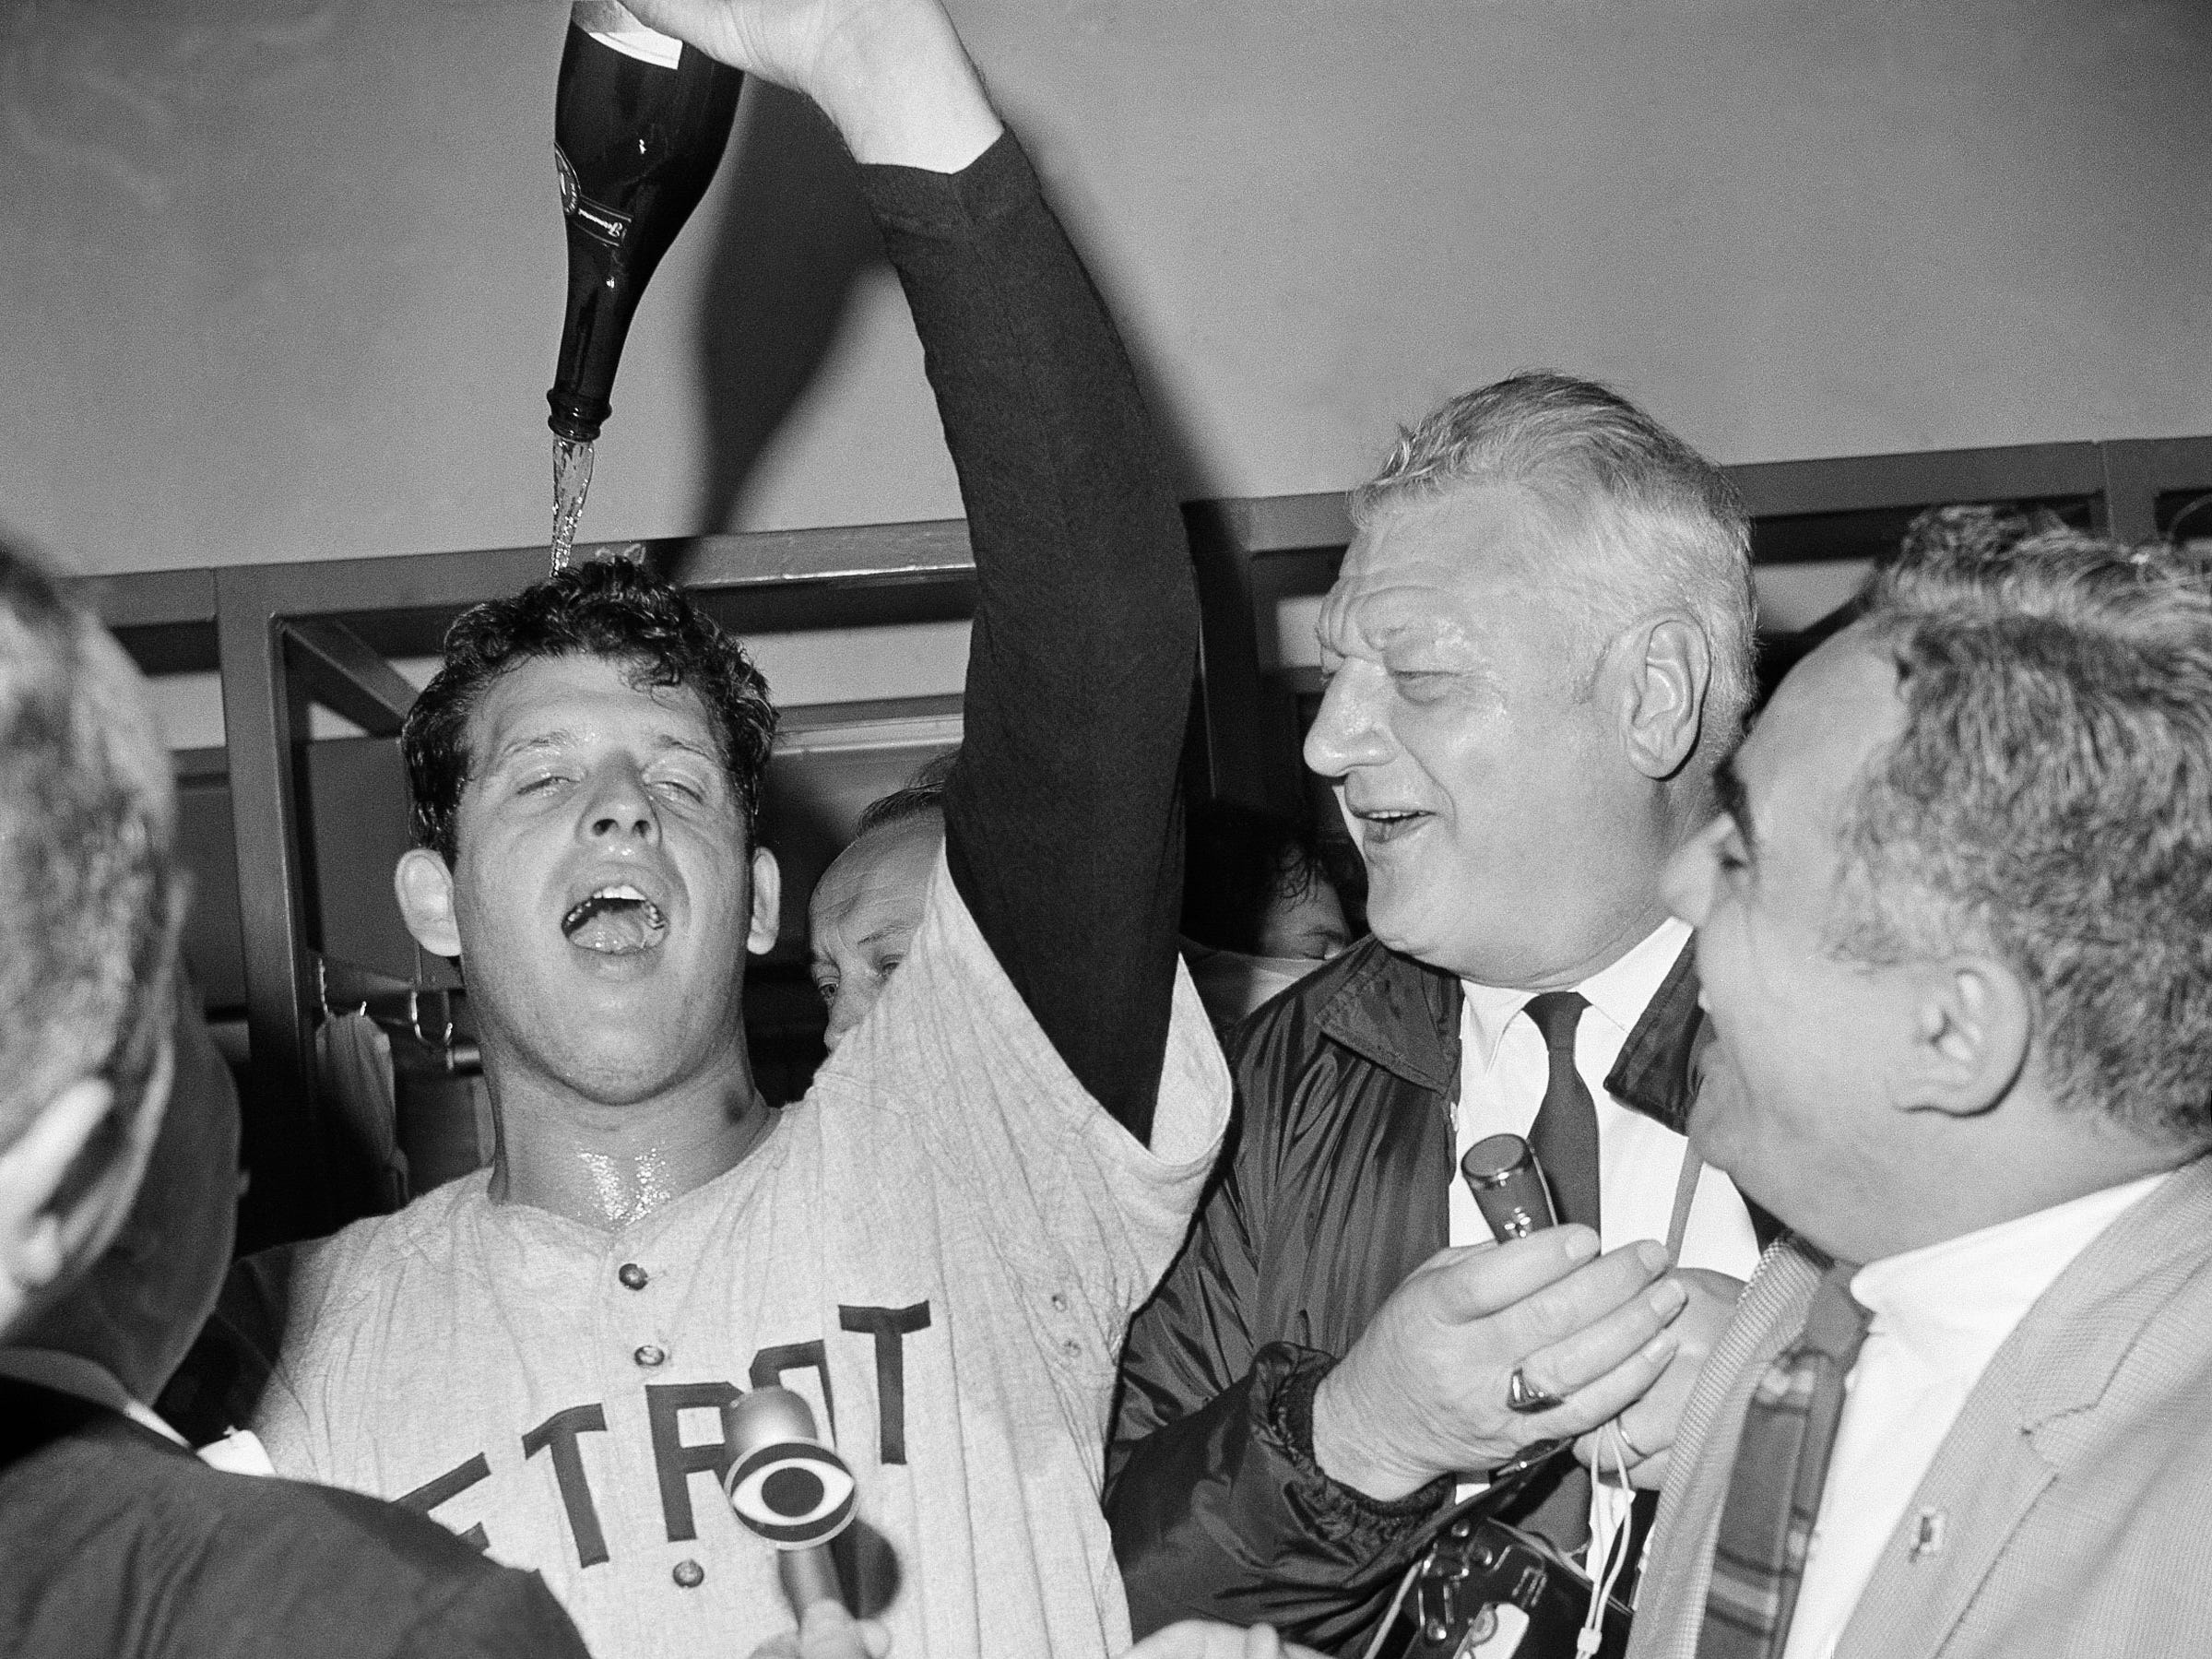 Detroit Tigers Pitcher Mickey Lolich, as he pours bottle of champagne on his head in dressing room after defeating the St. Louis Cardinals 4 to 1 in St. Louis, October 10, 1968.  This was the  final game of  World Series at Busch Stadium.